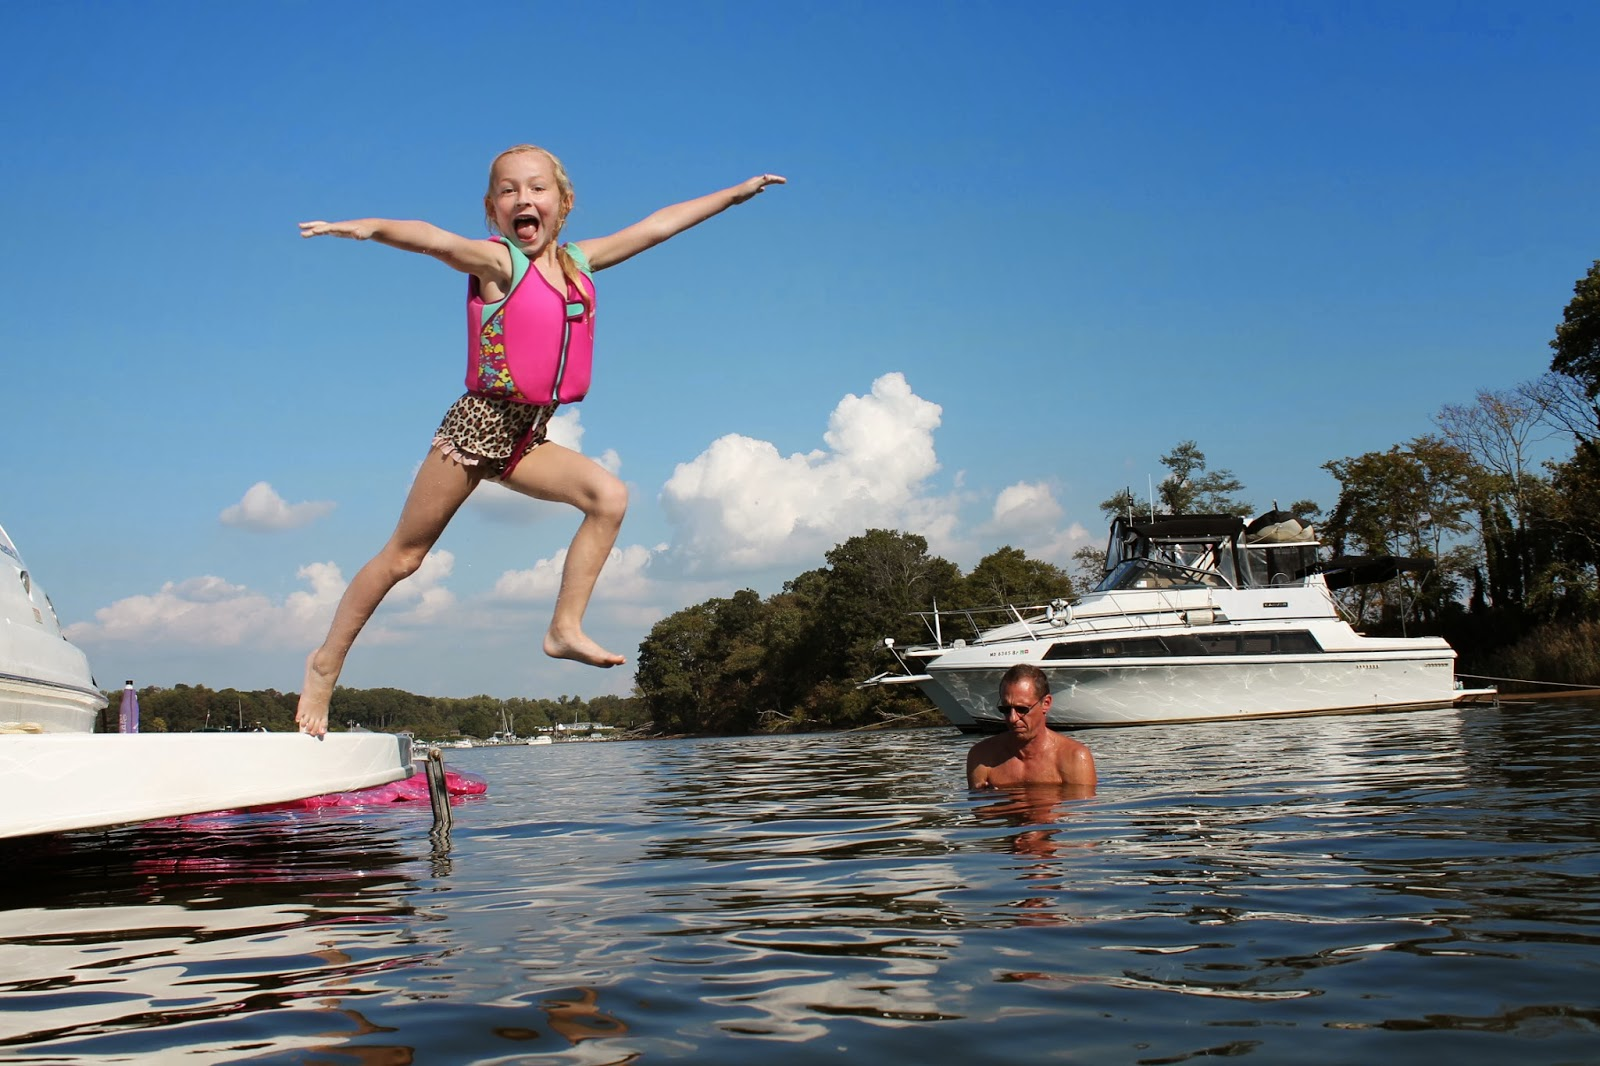 boating pictures